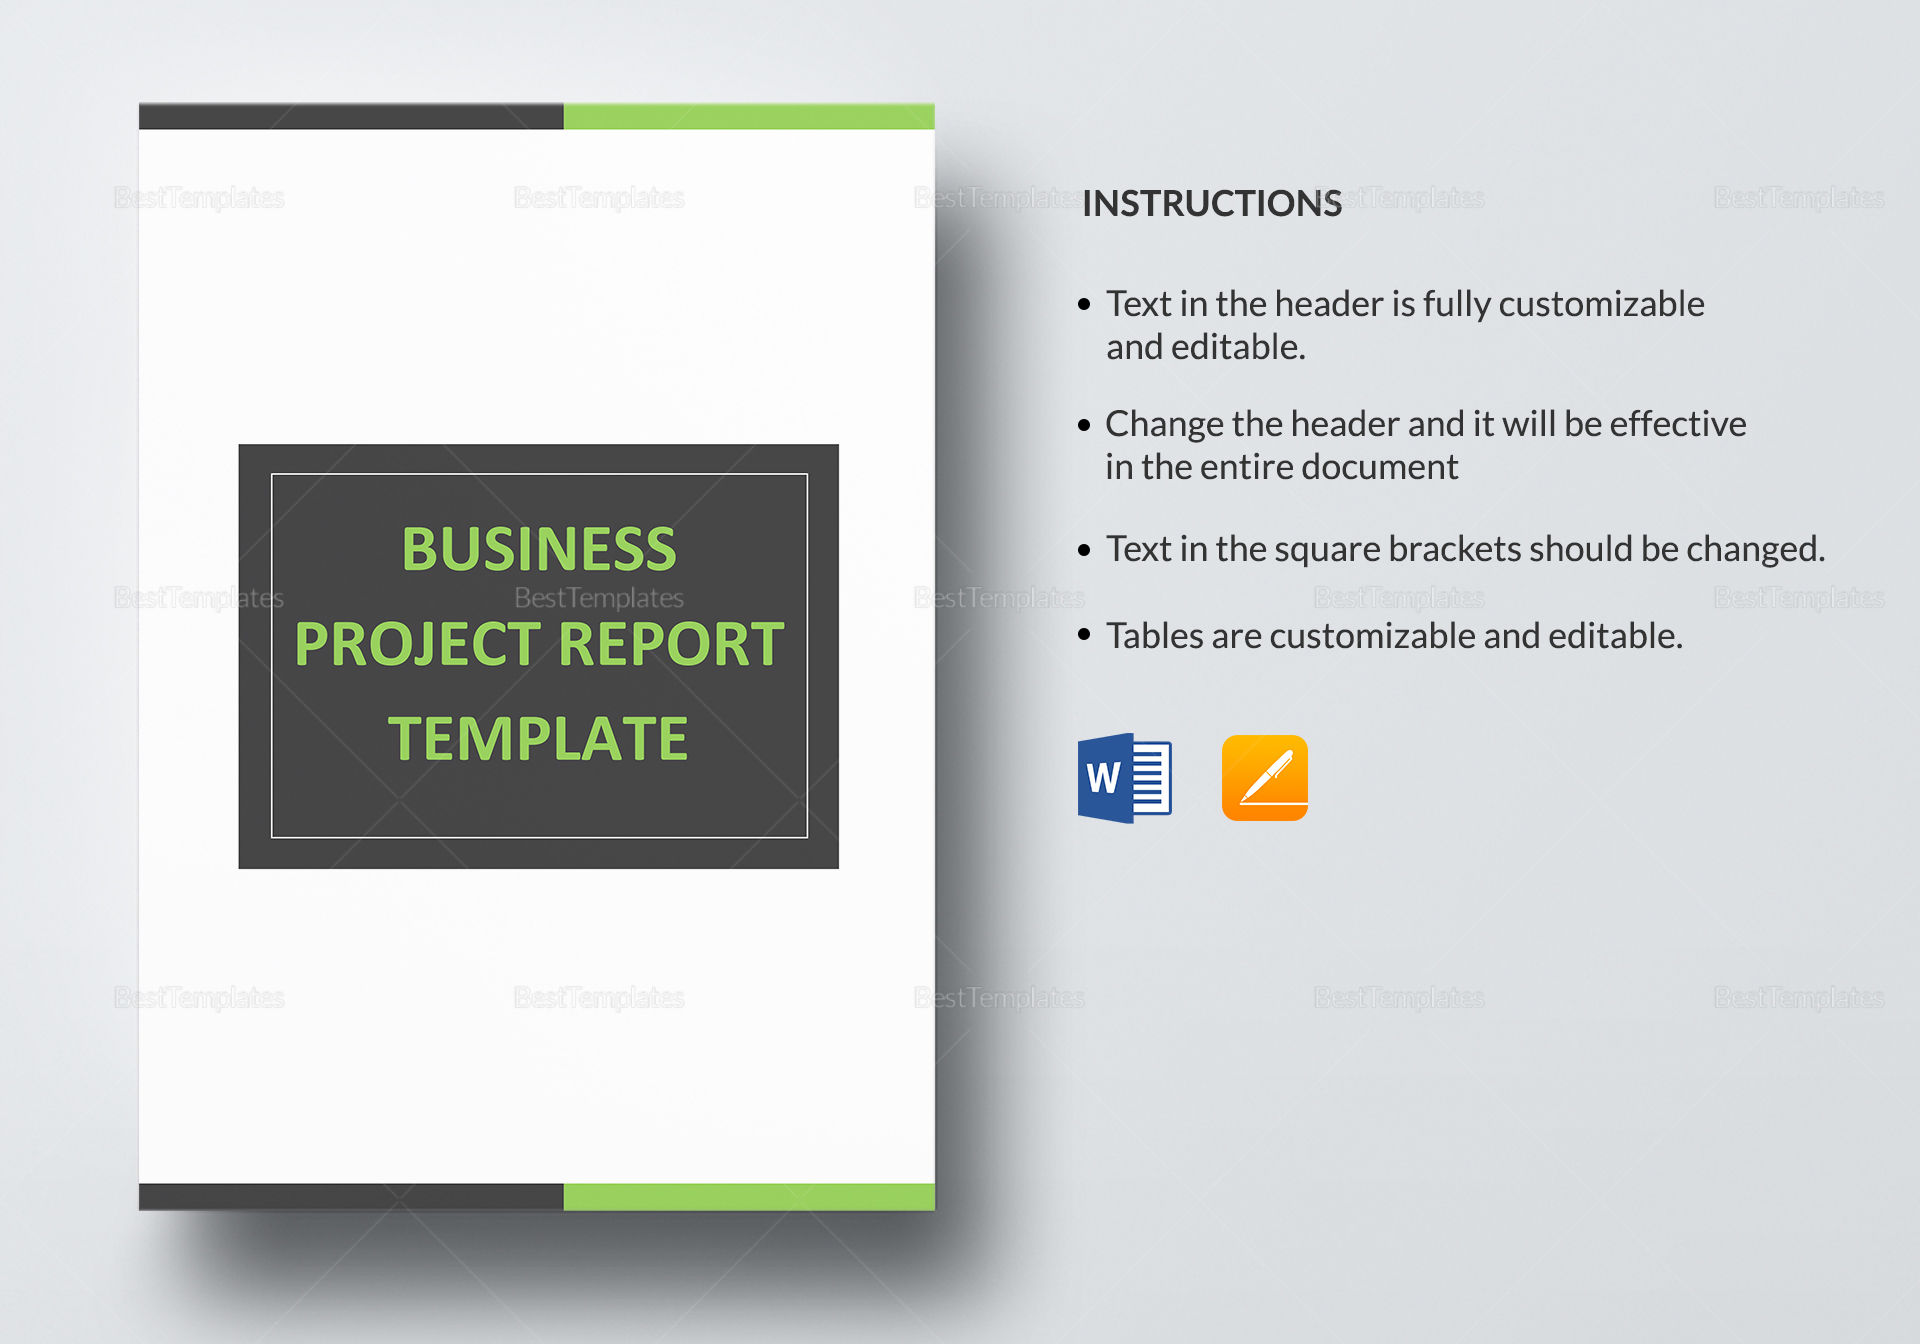 Sample Business Project Report Template